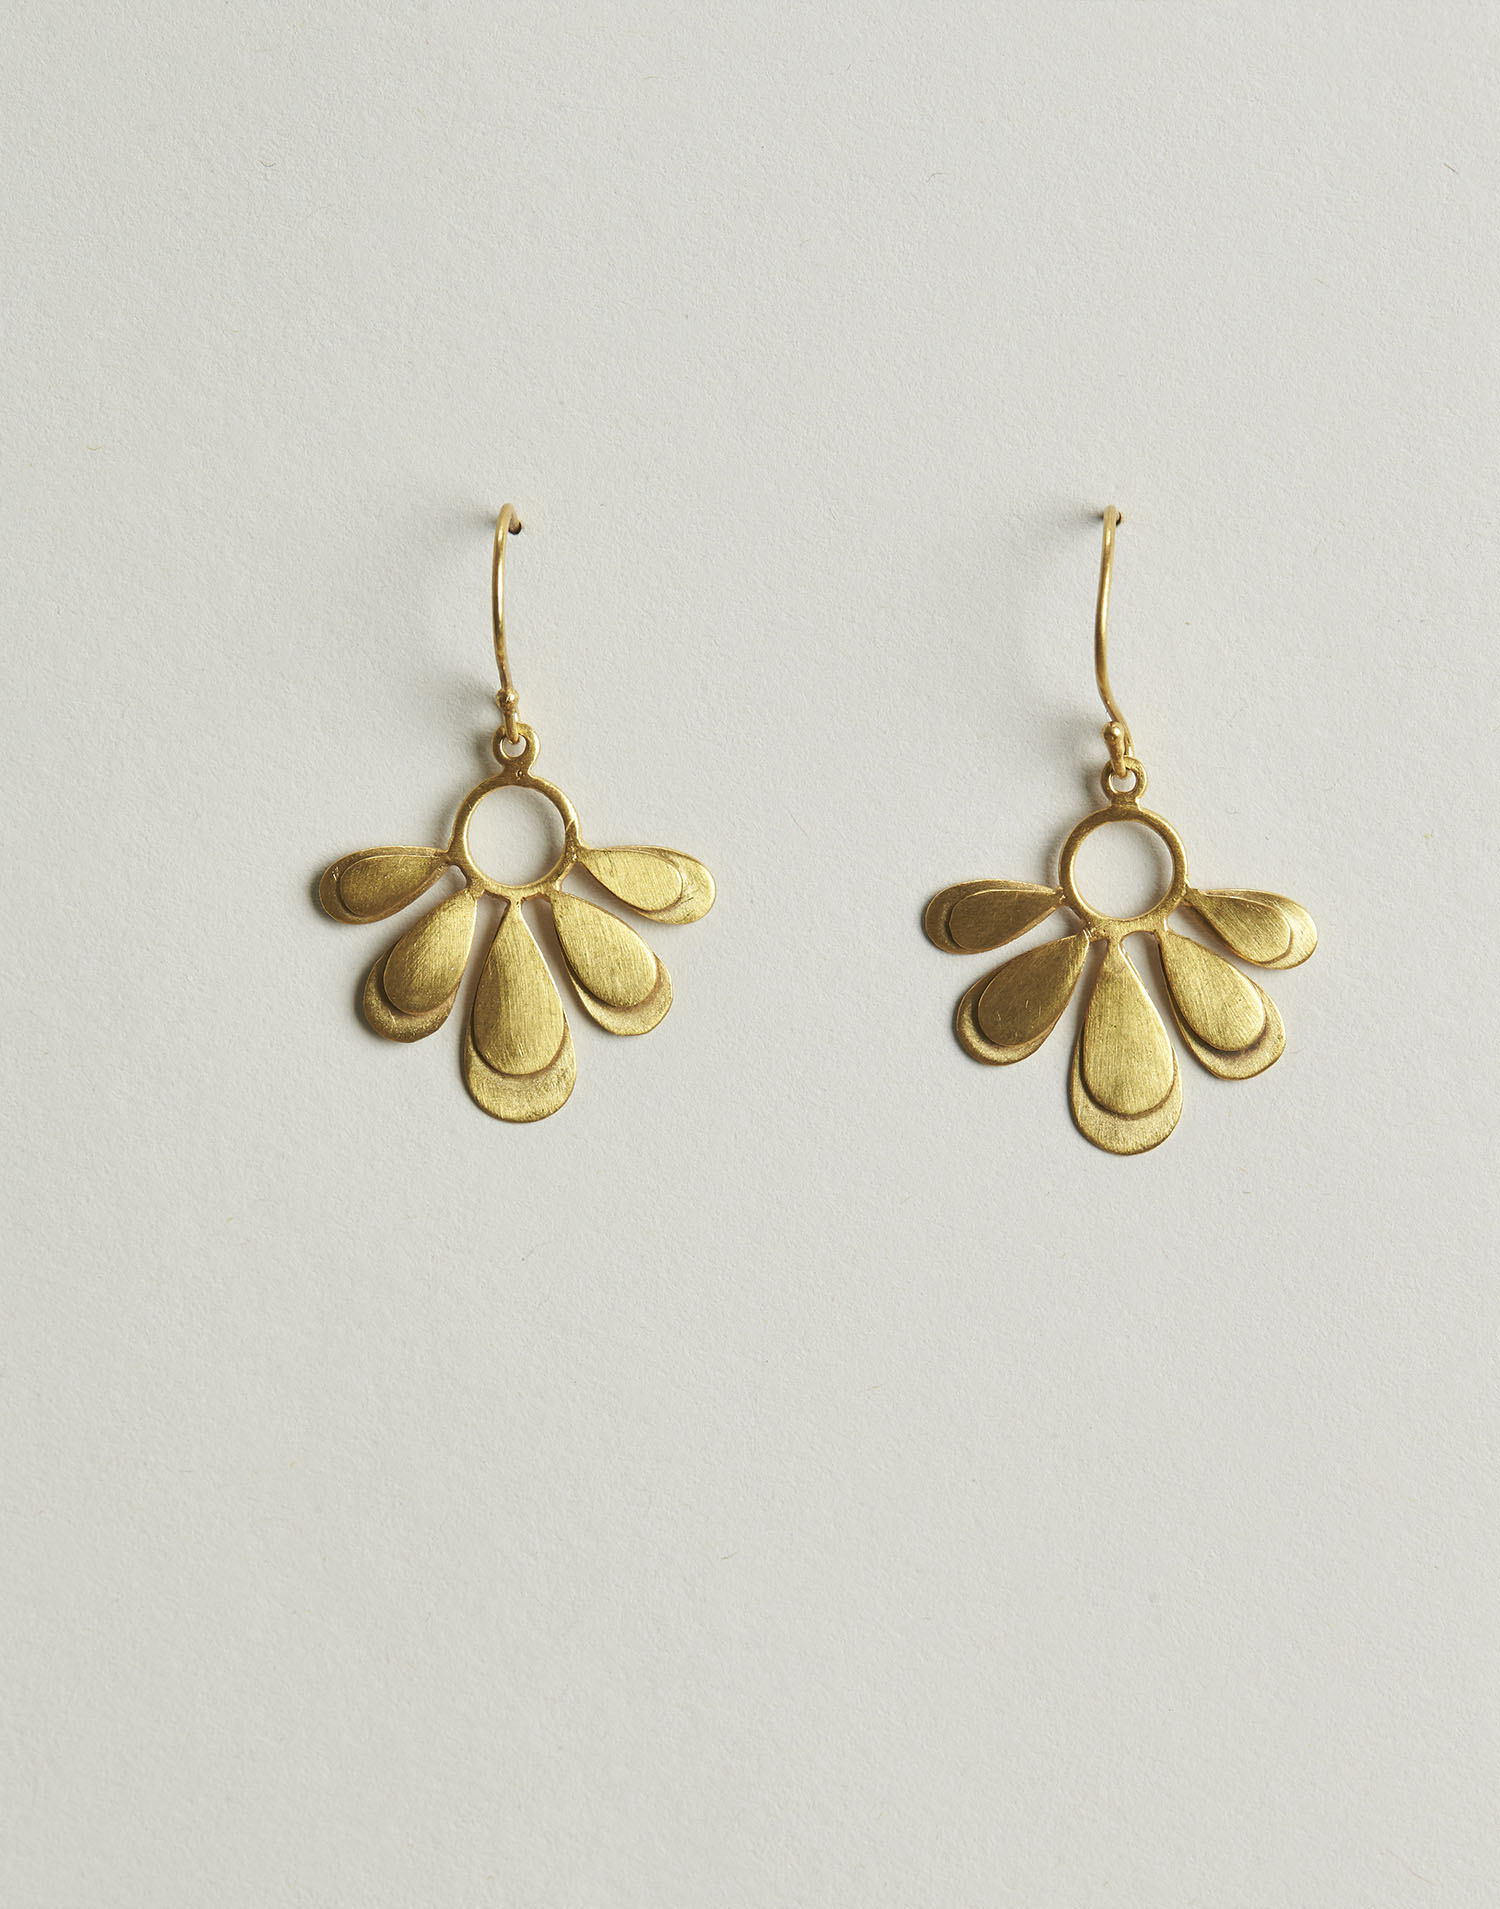 Gilded daisy earrings